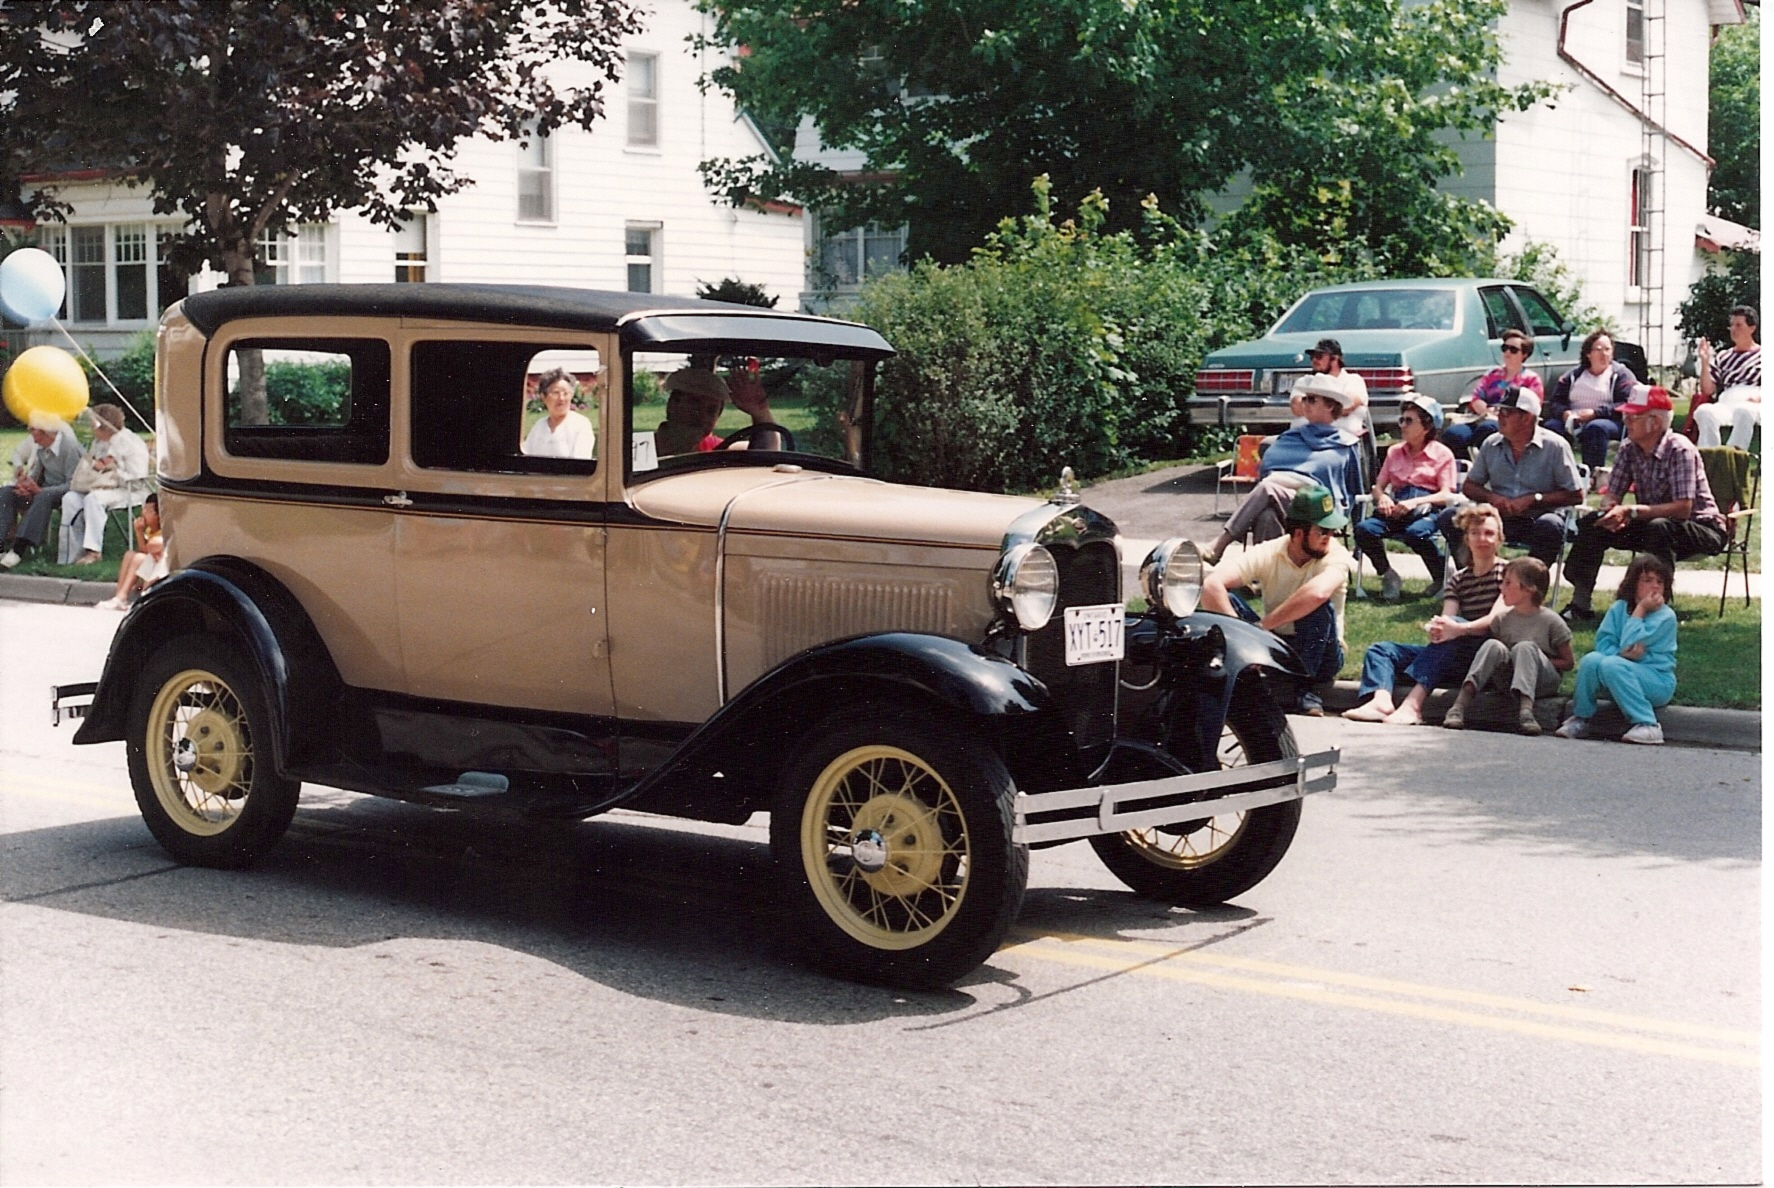 A 1929 Chevrolet A Car From My Past